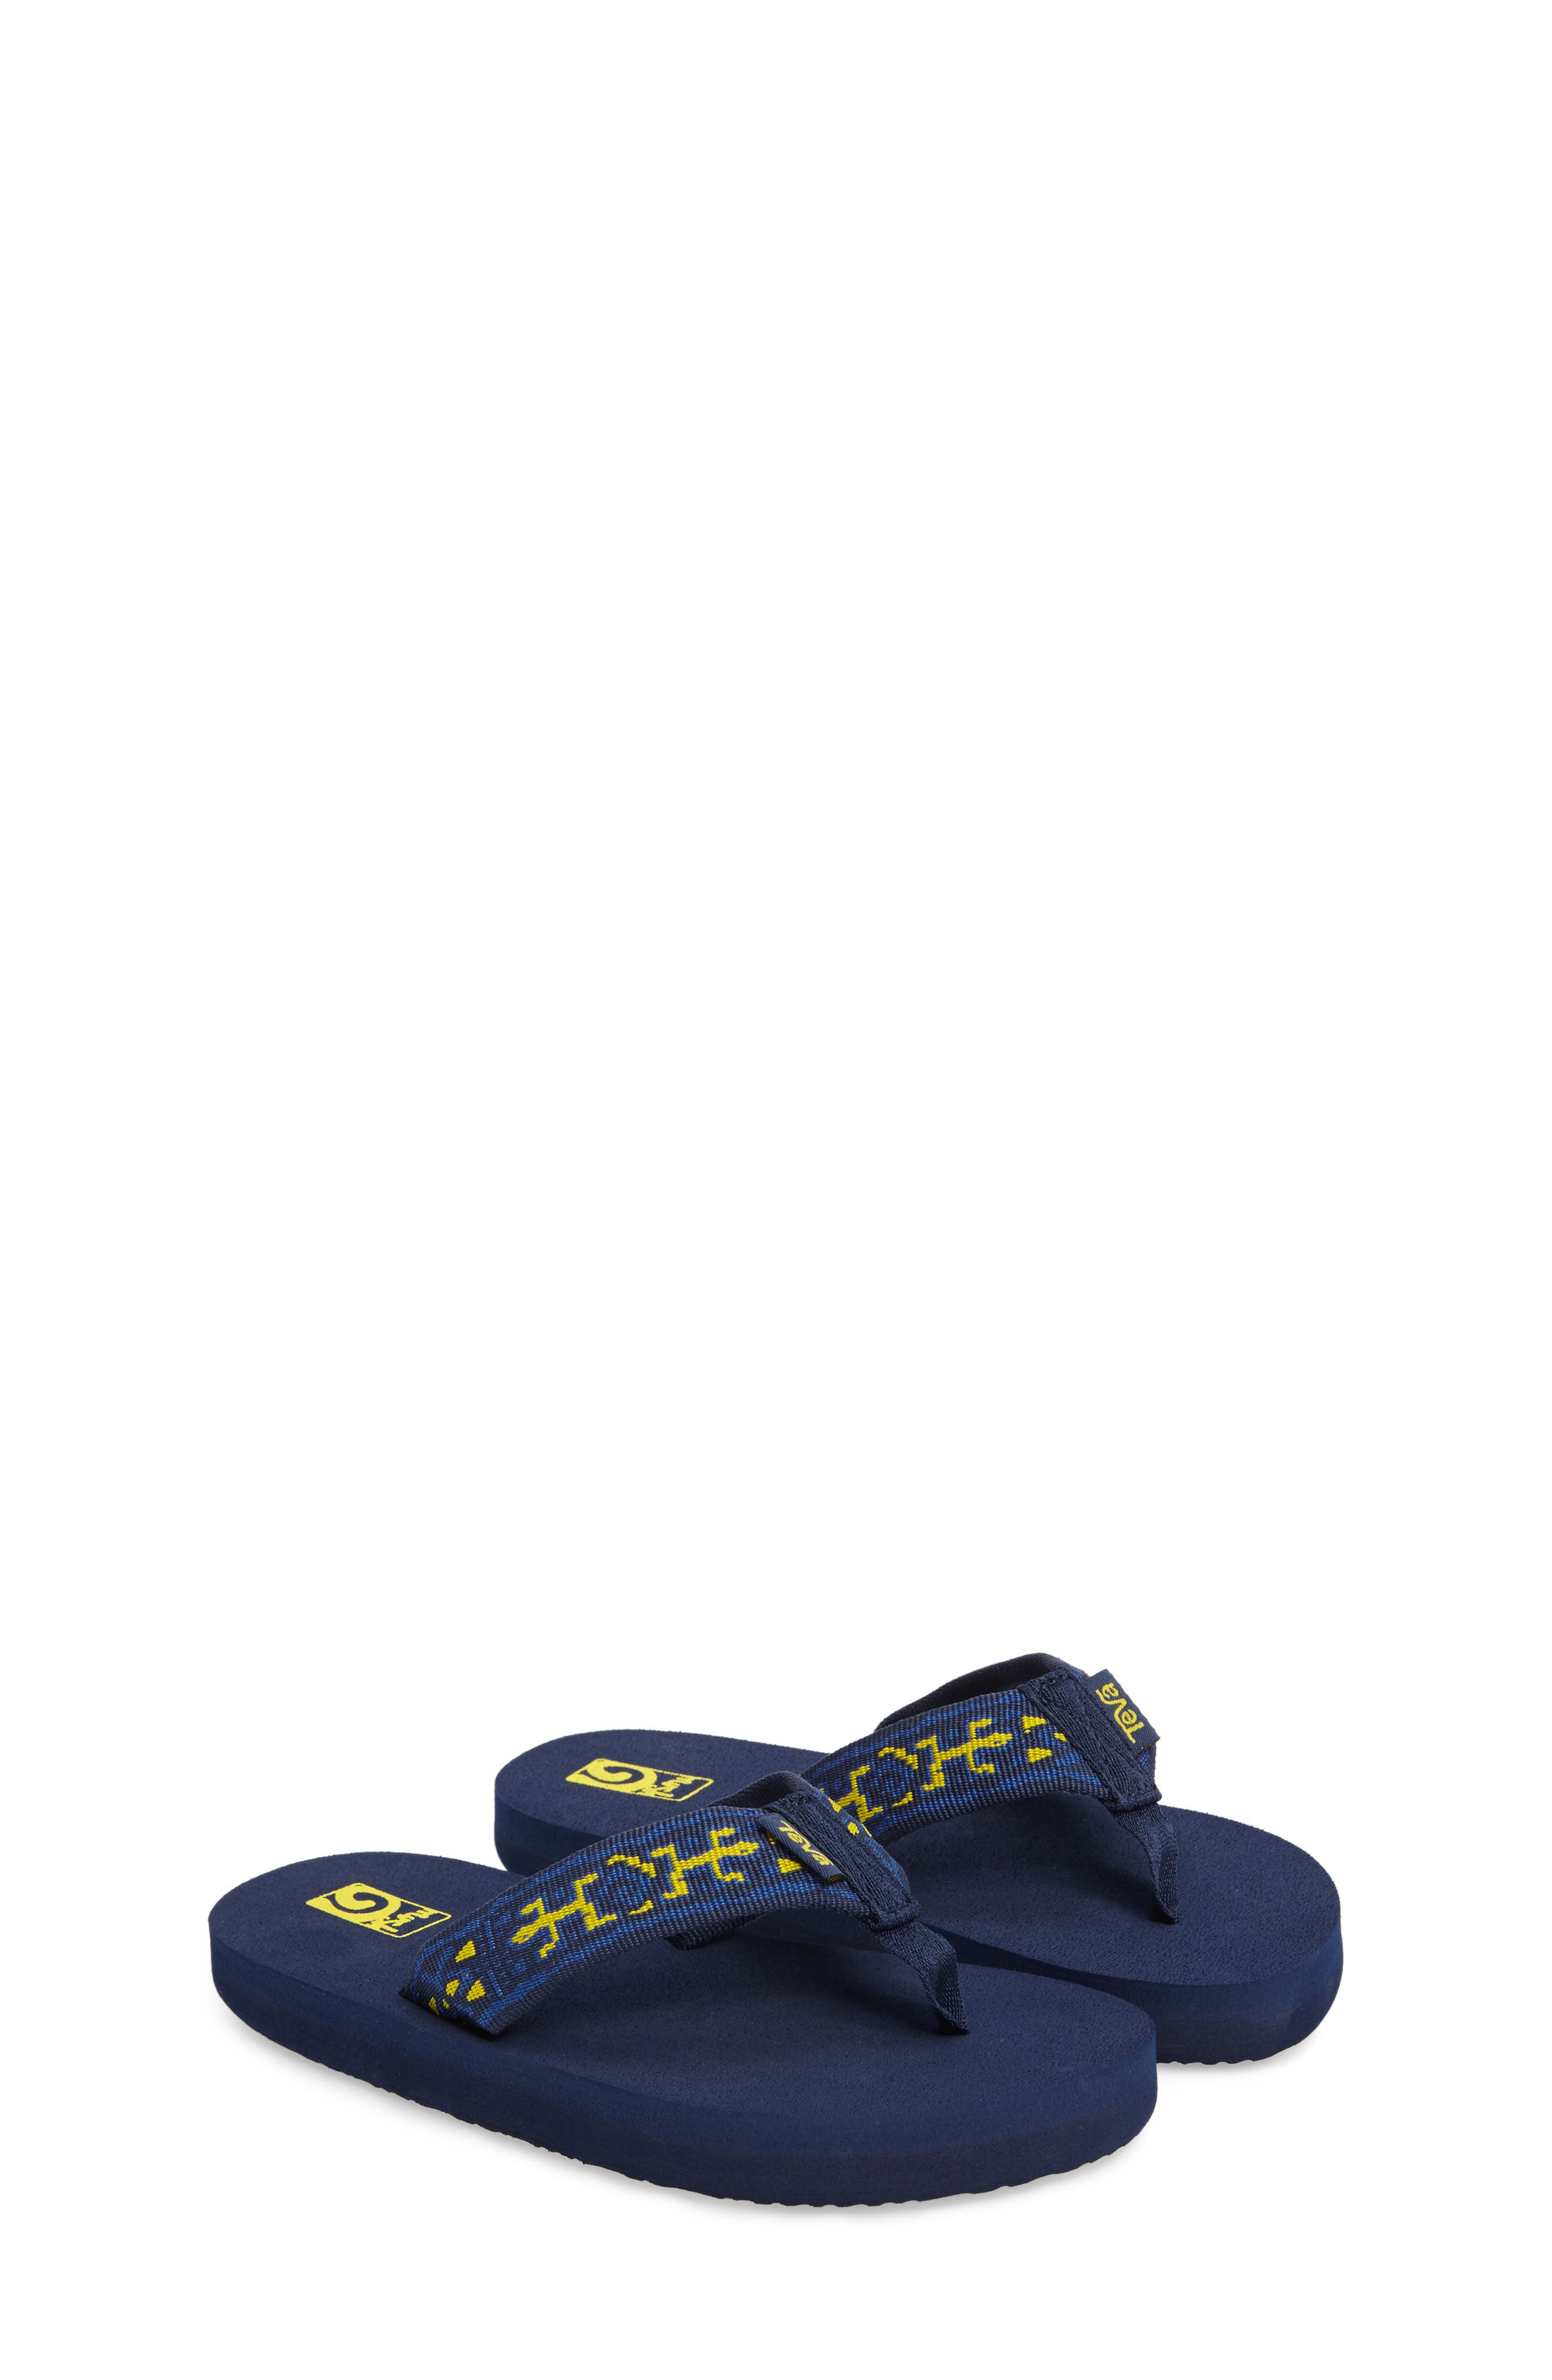 Teva Mush II Flip Flop (Baby, Walker, Toddler, Little Kid & Big Kid)